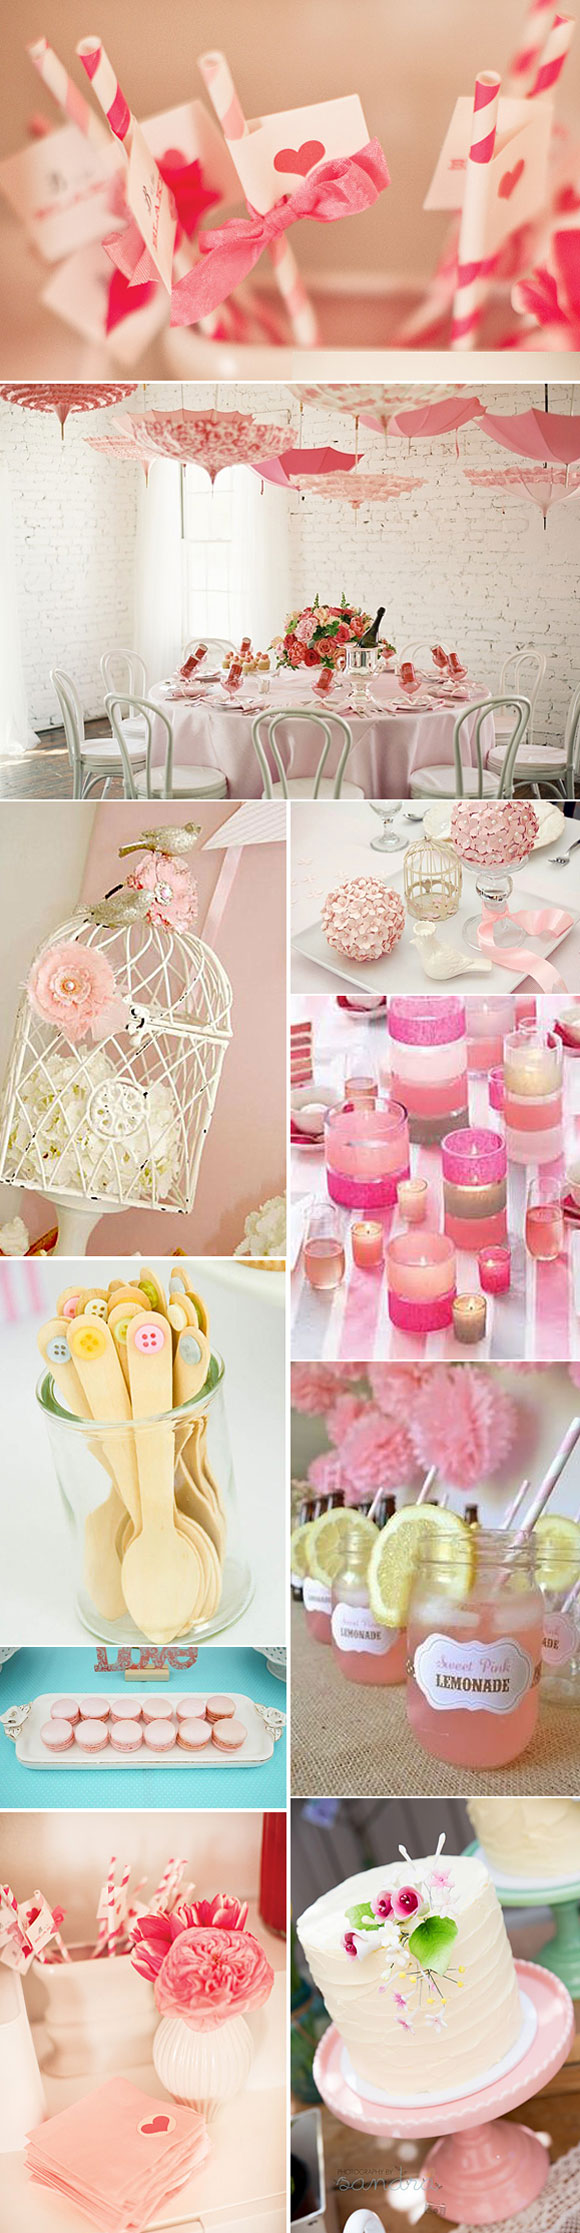 Ideas para decorar un baby shower de ninas